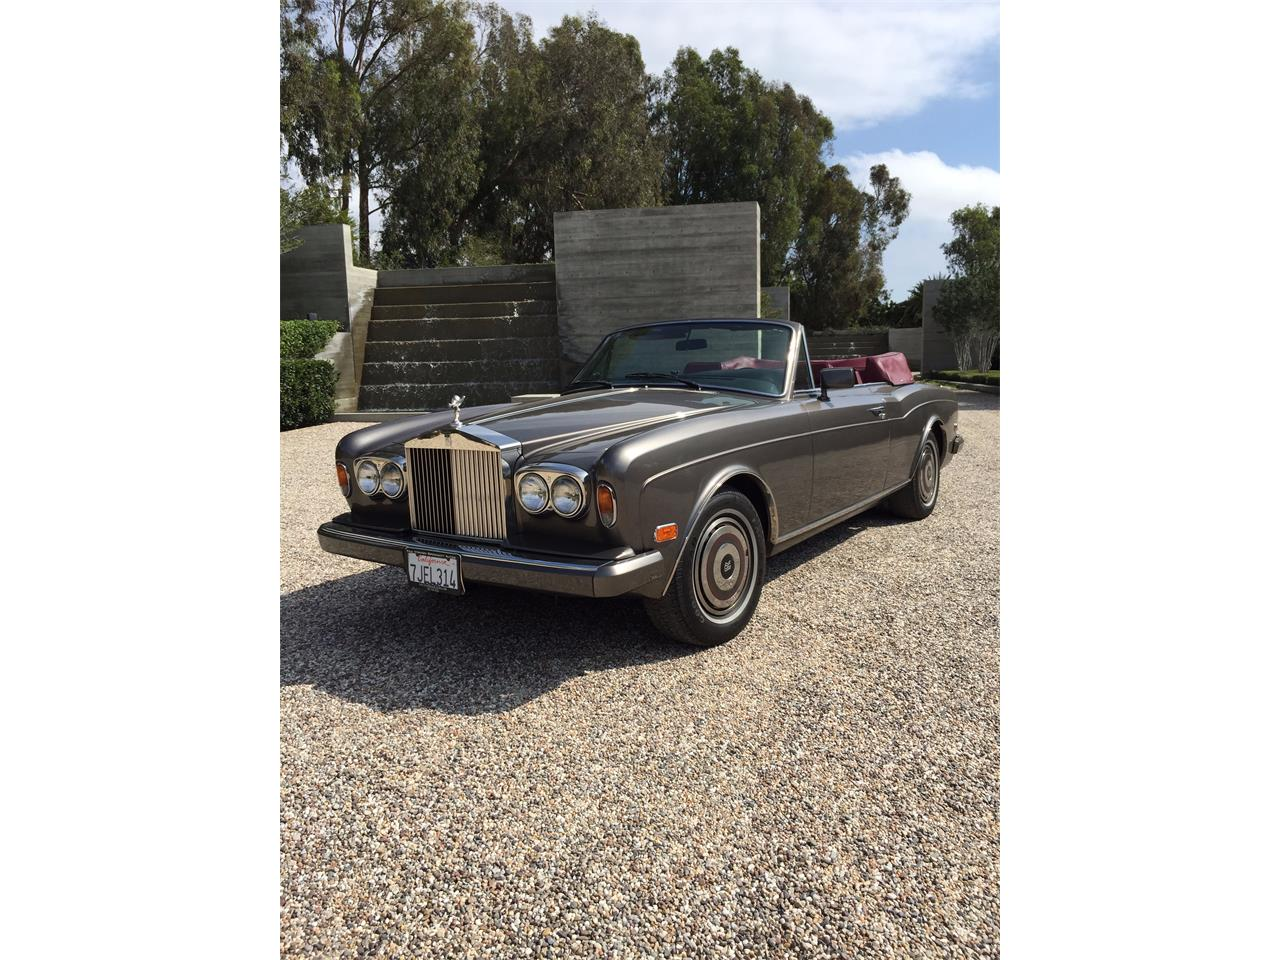 Large Picture of '87 Rolls-Royce Corniche II Offered by a Private Seller - PZCX